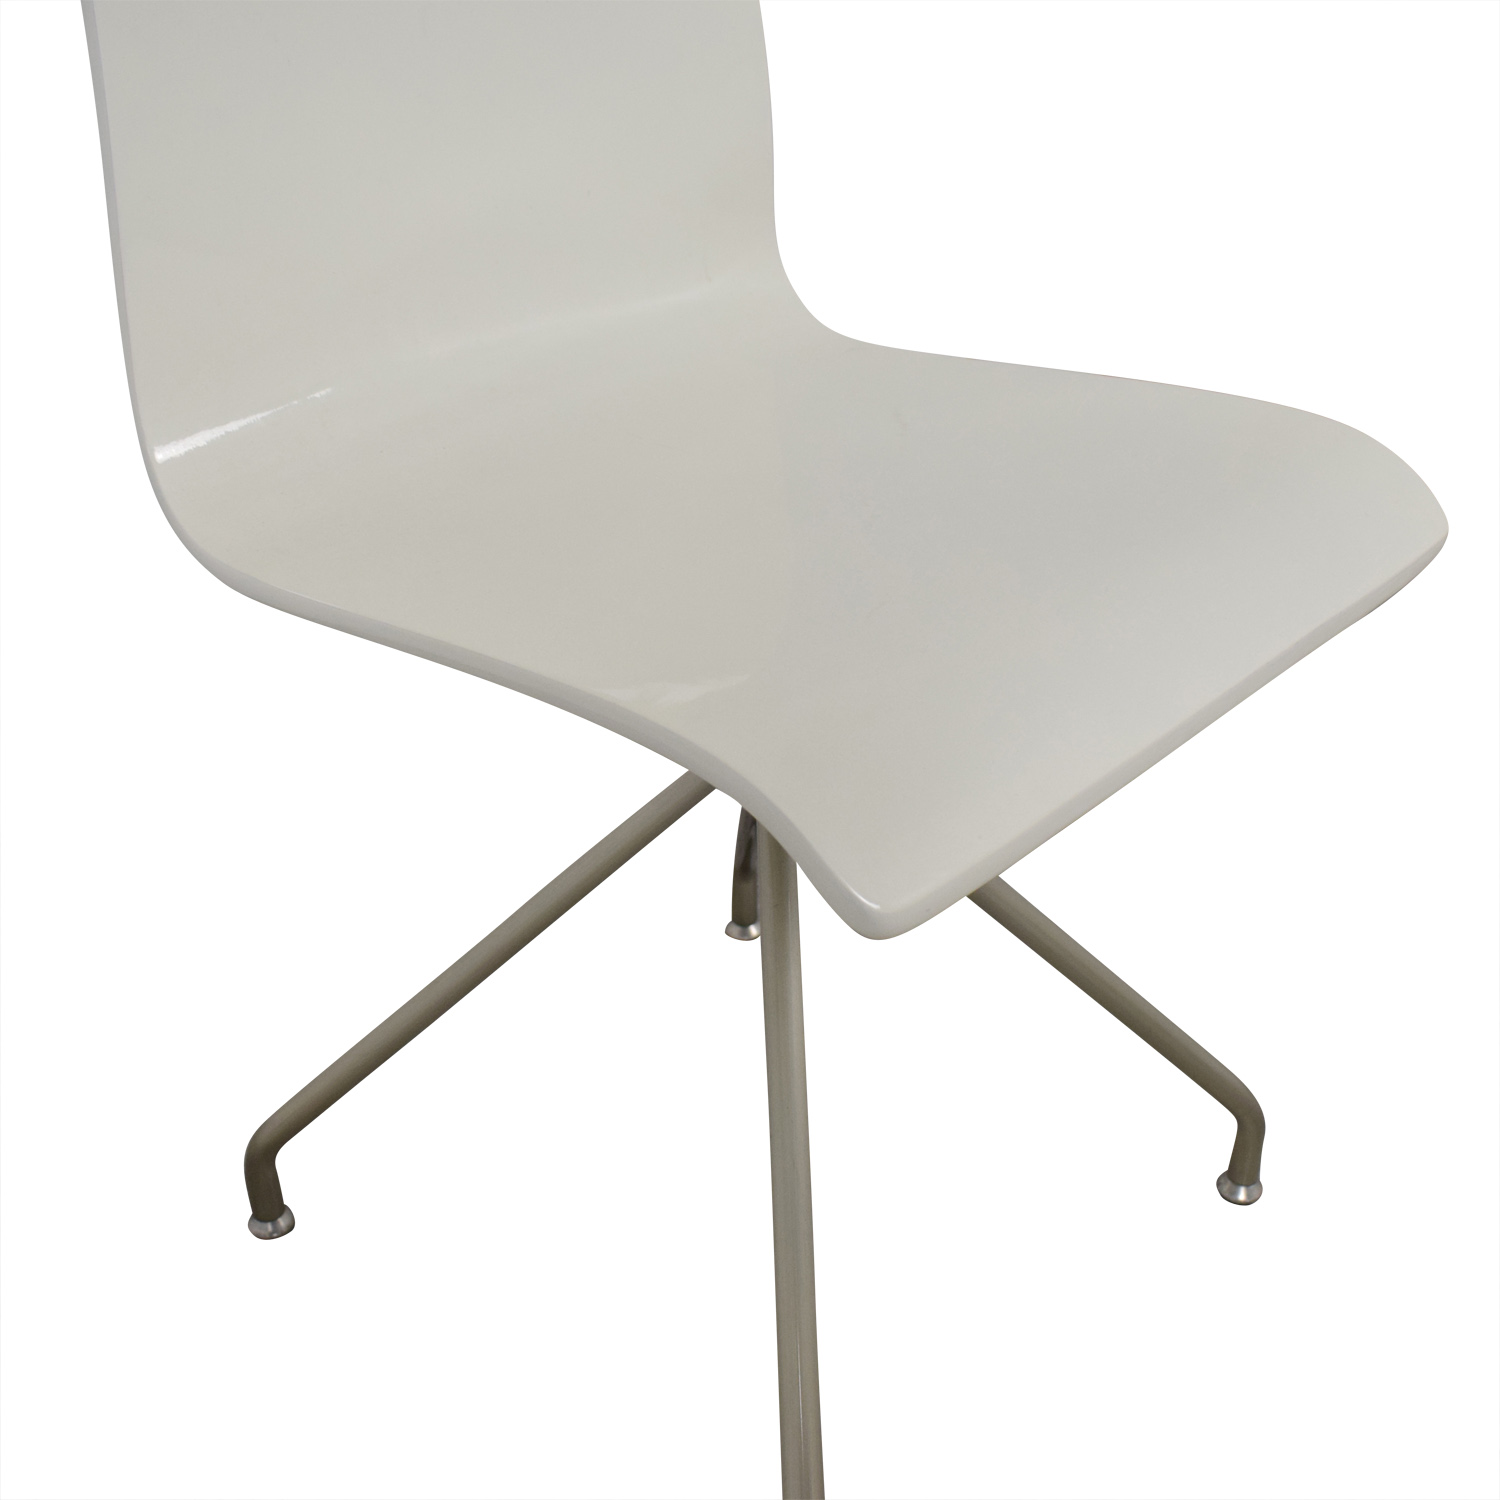 Crate & Barrel Crate & Barrel White Office Chair Chairs